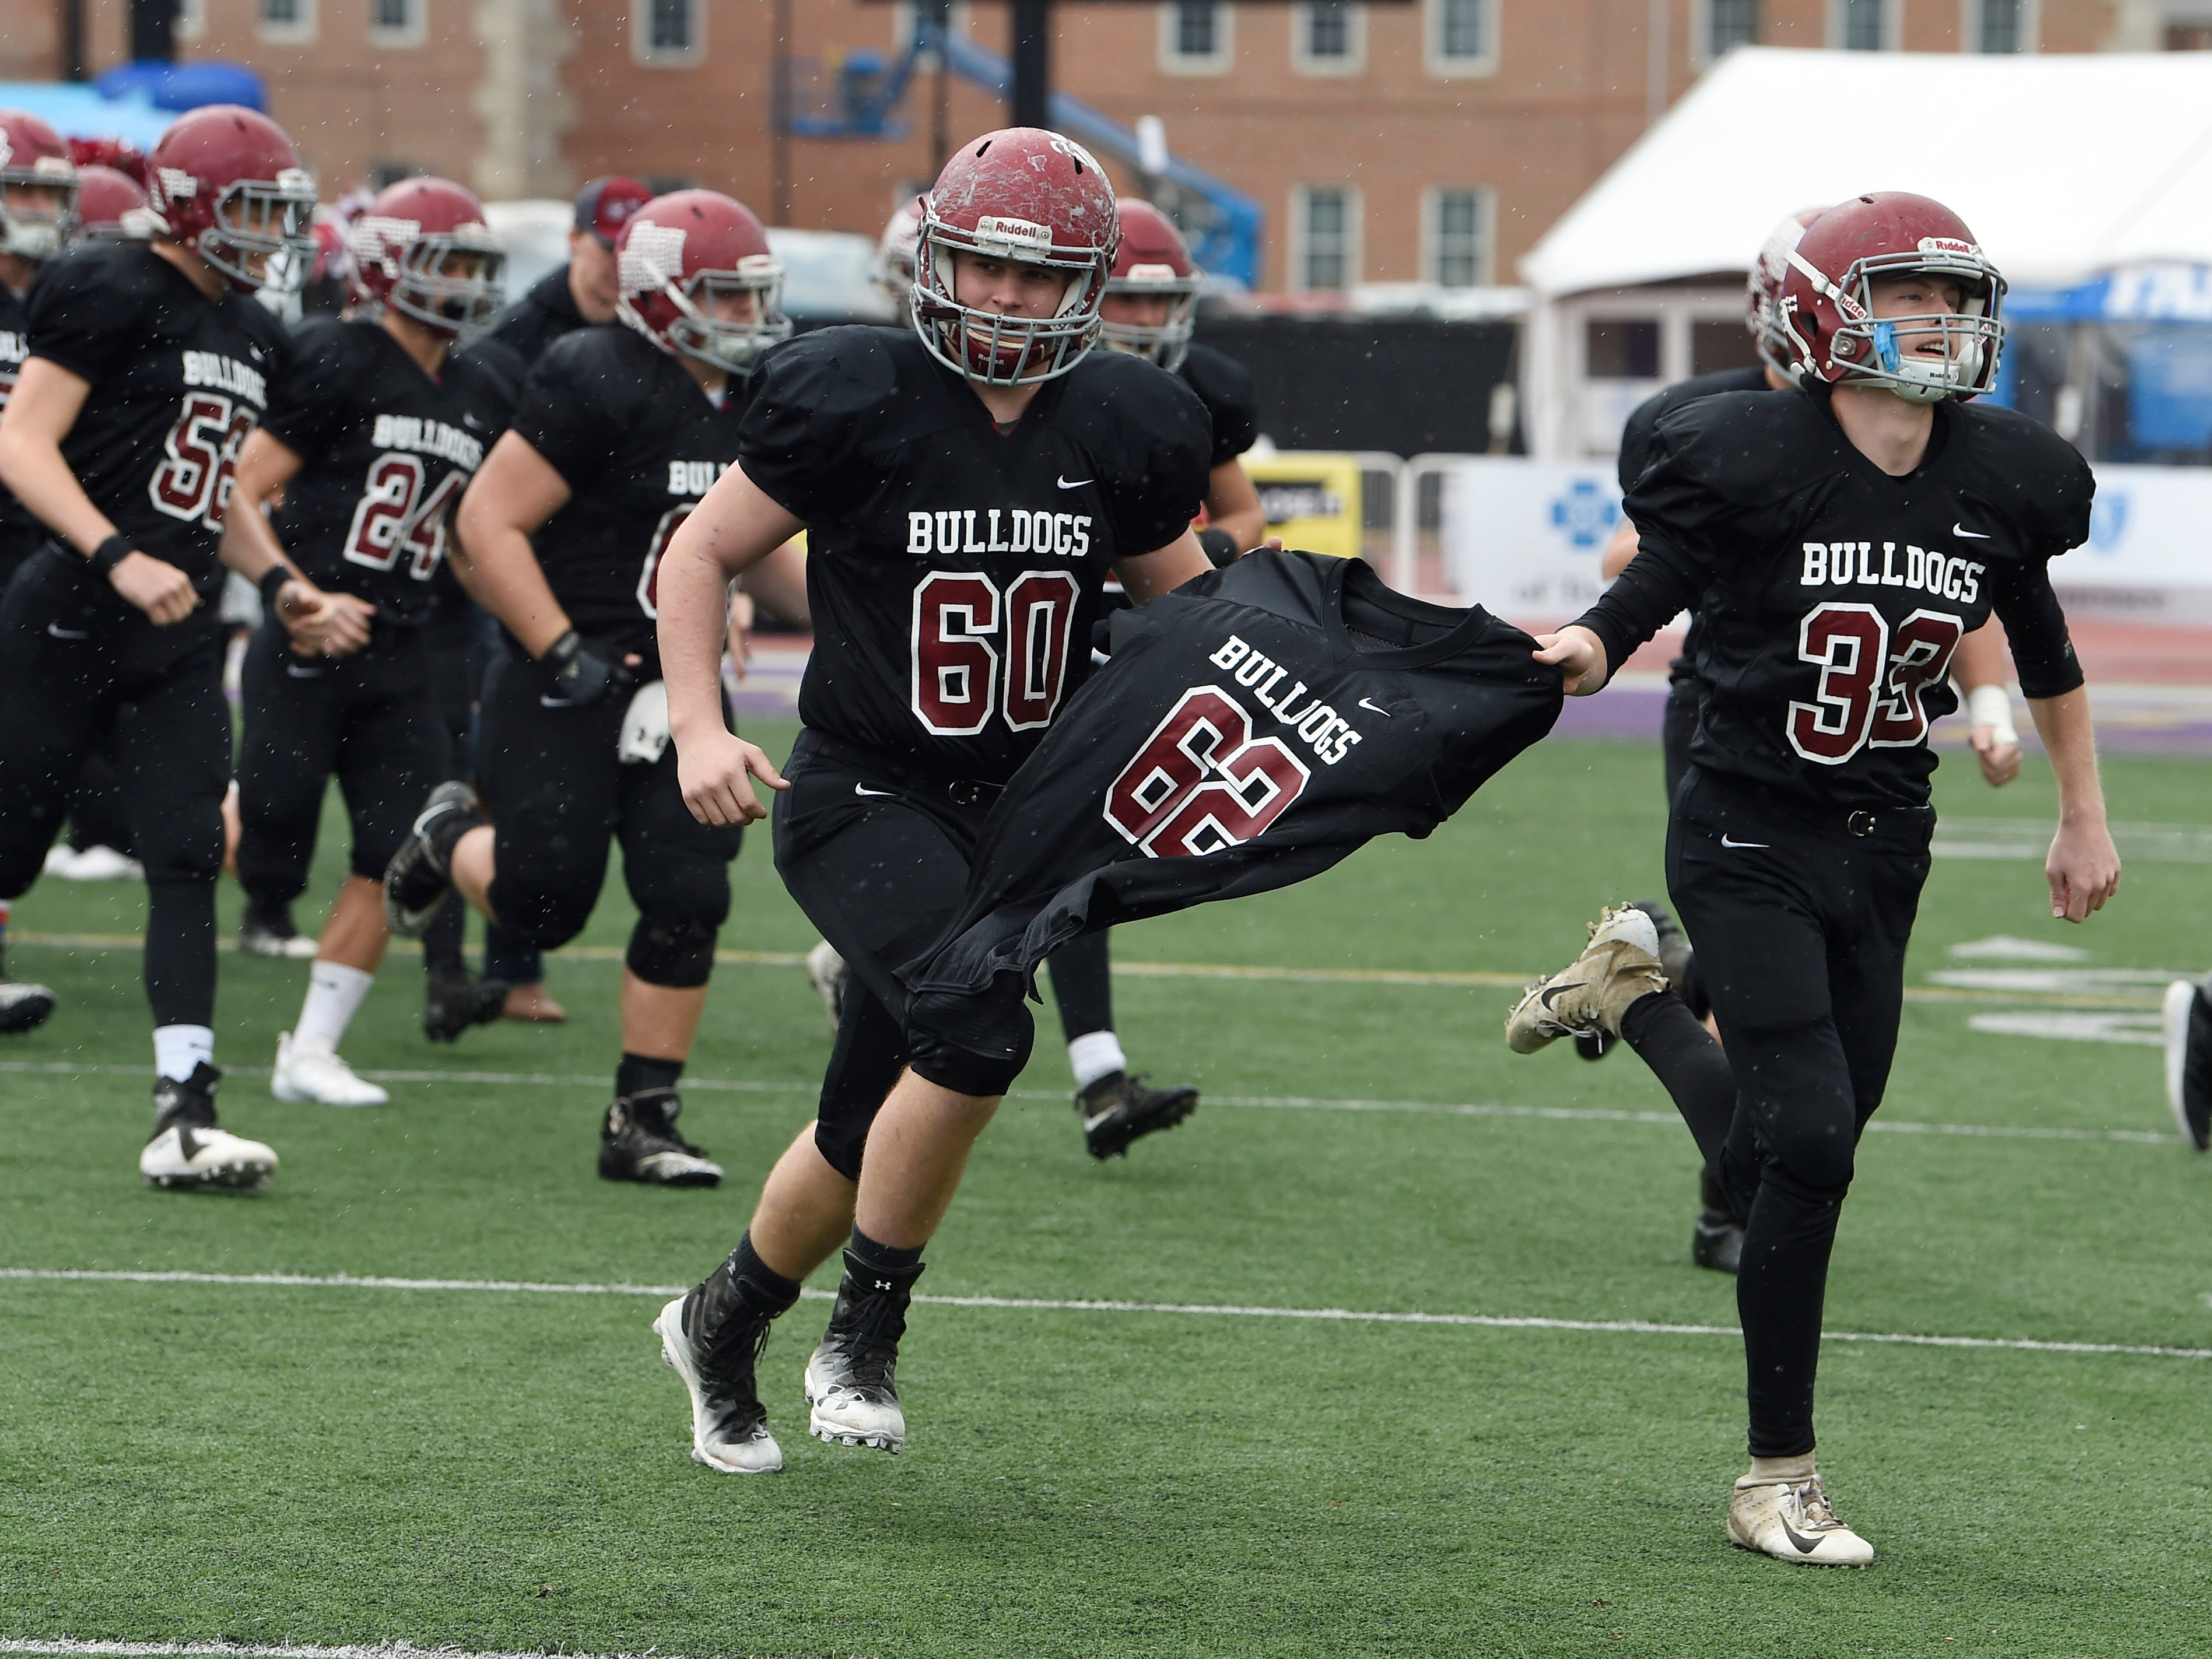 Cornersville players carry the jersey of former player Bryan Giles (62) onto the field for the start of the Class I-A BlueCross Bowl state championship at Tennessee Tech's Tucker Stadium in Cookeville, Tenn., on Saturday, Dec. 1, 2018. Bryan Giles died in June 2017